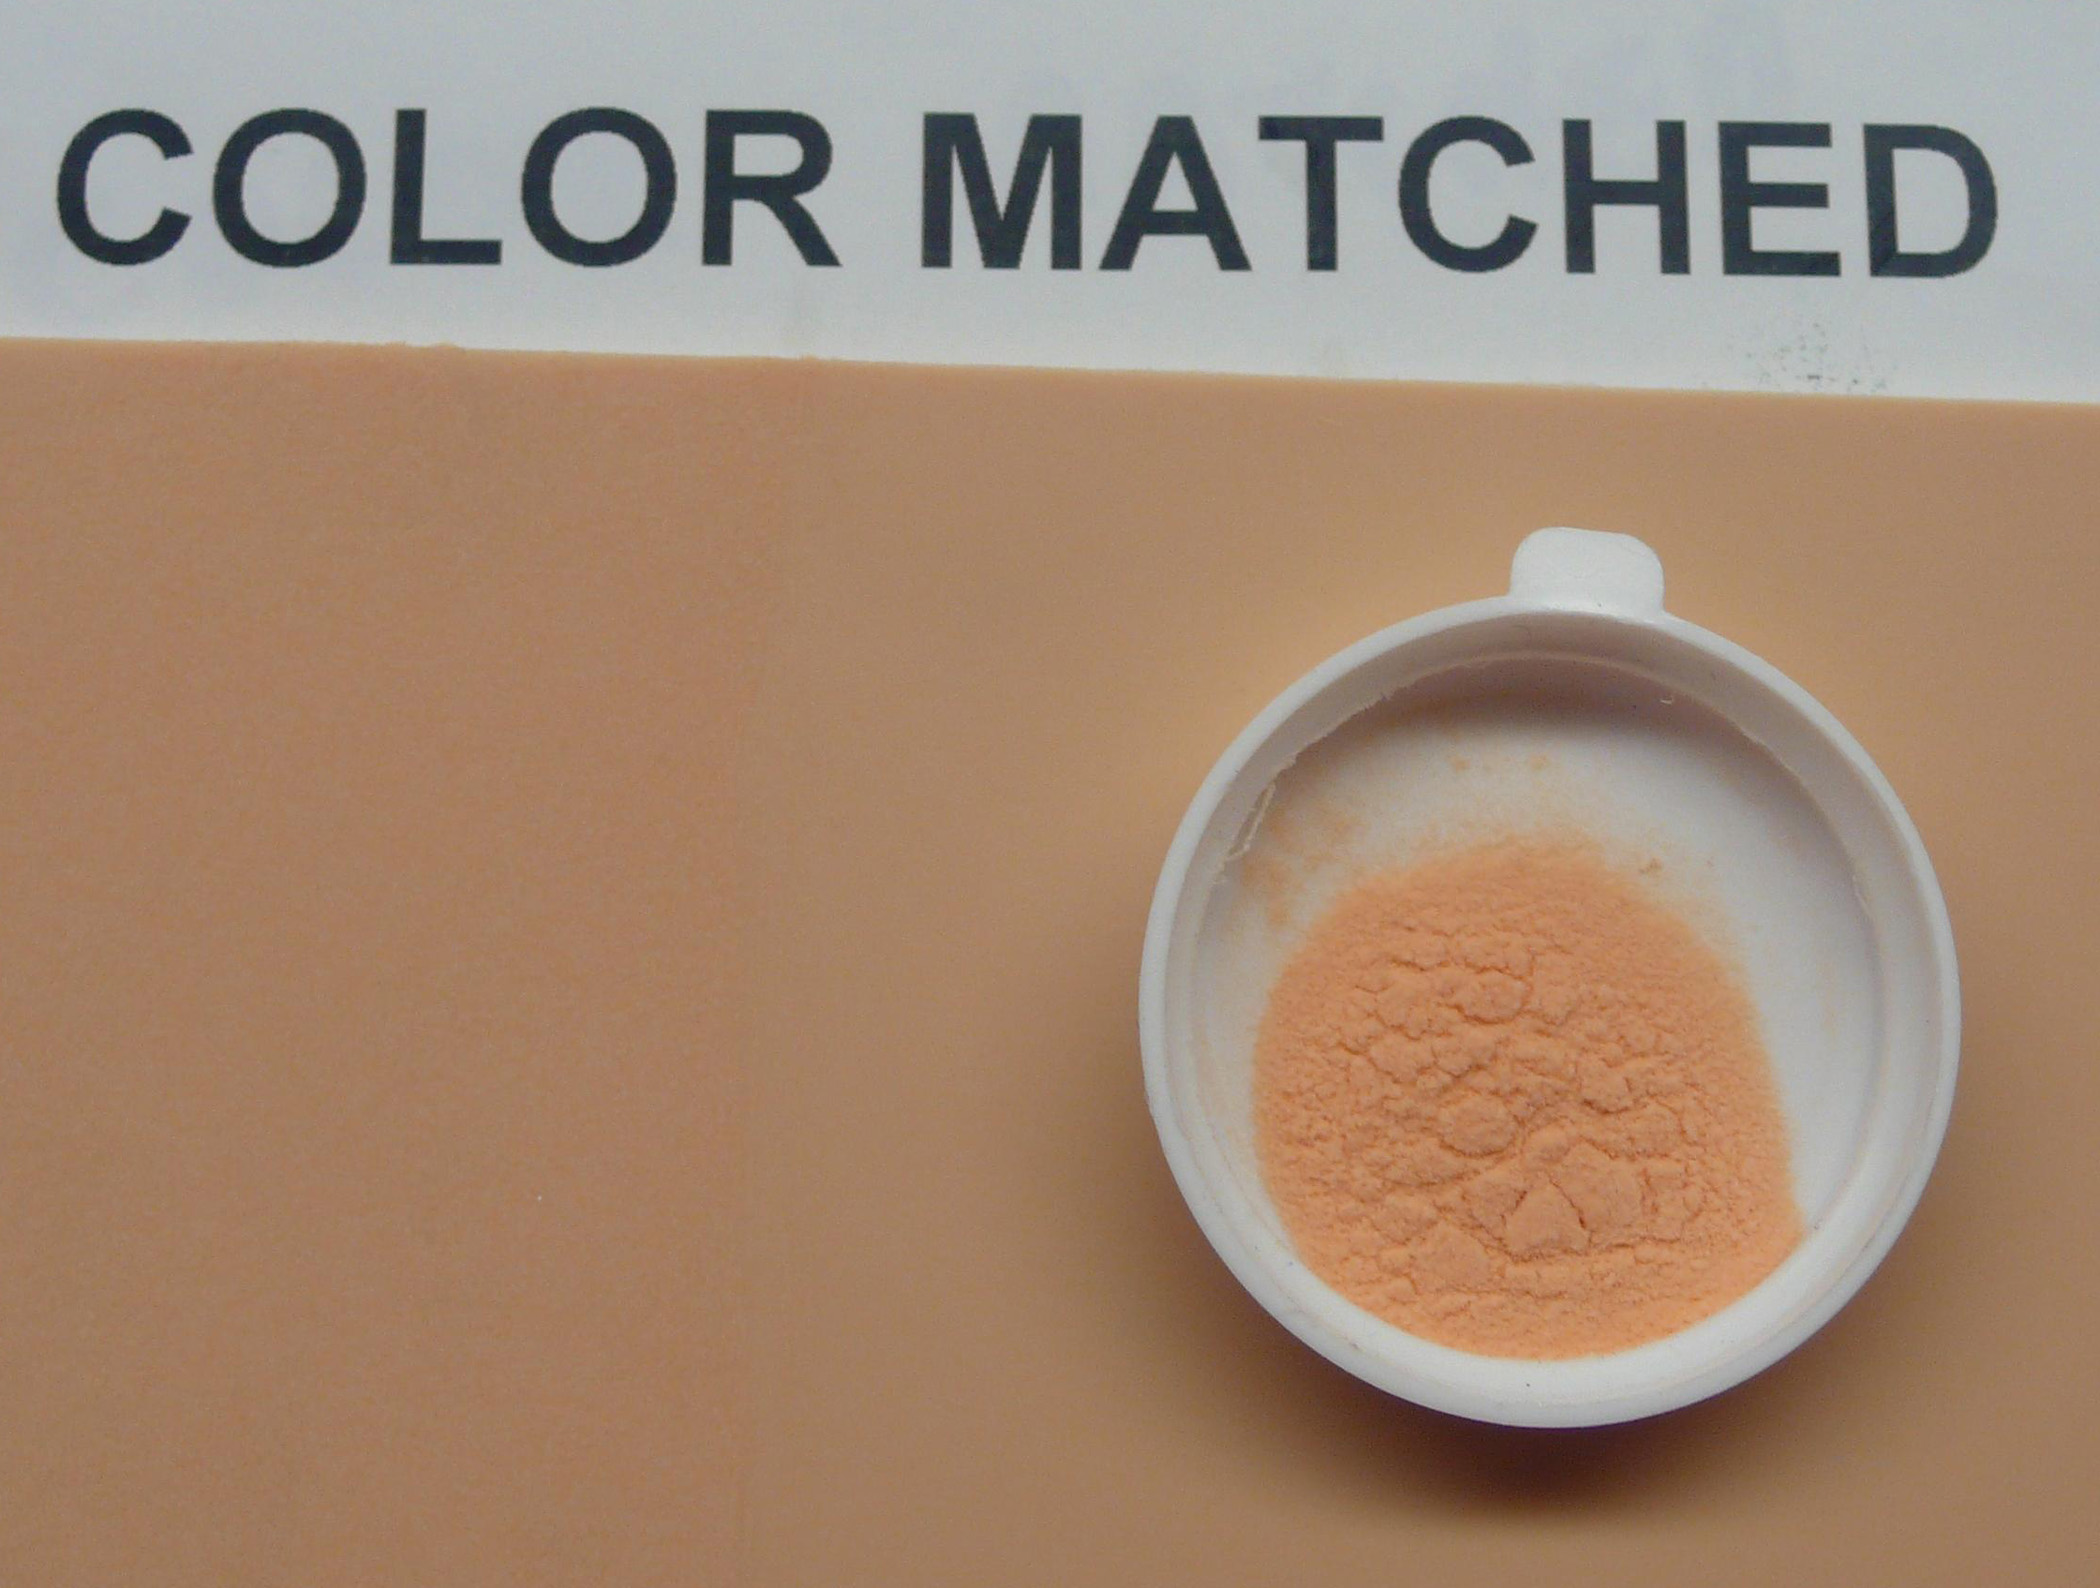 Color-Matched Skin Color Flesh Tone Microspheres